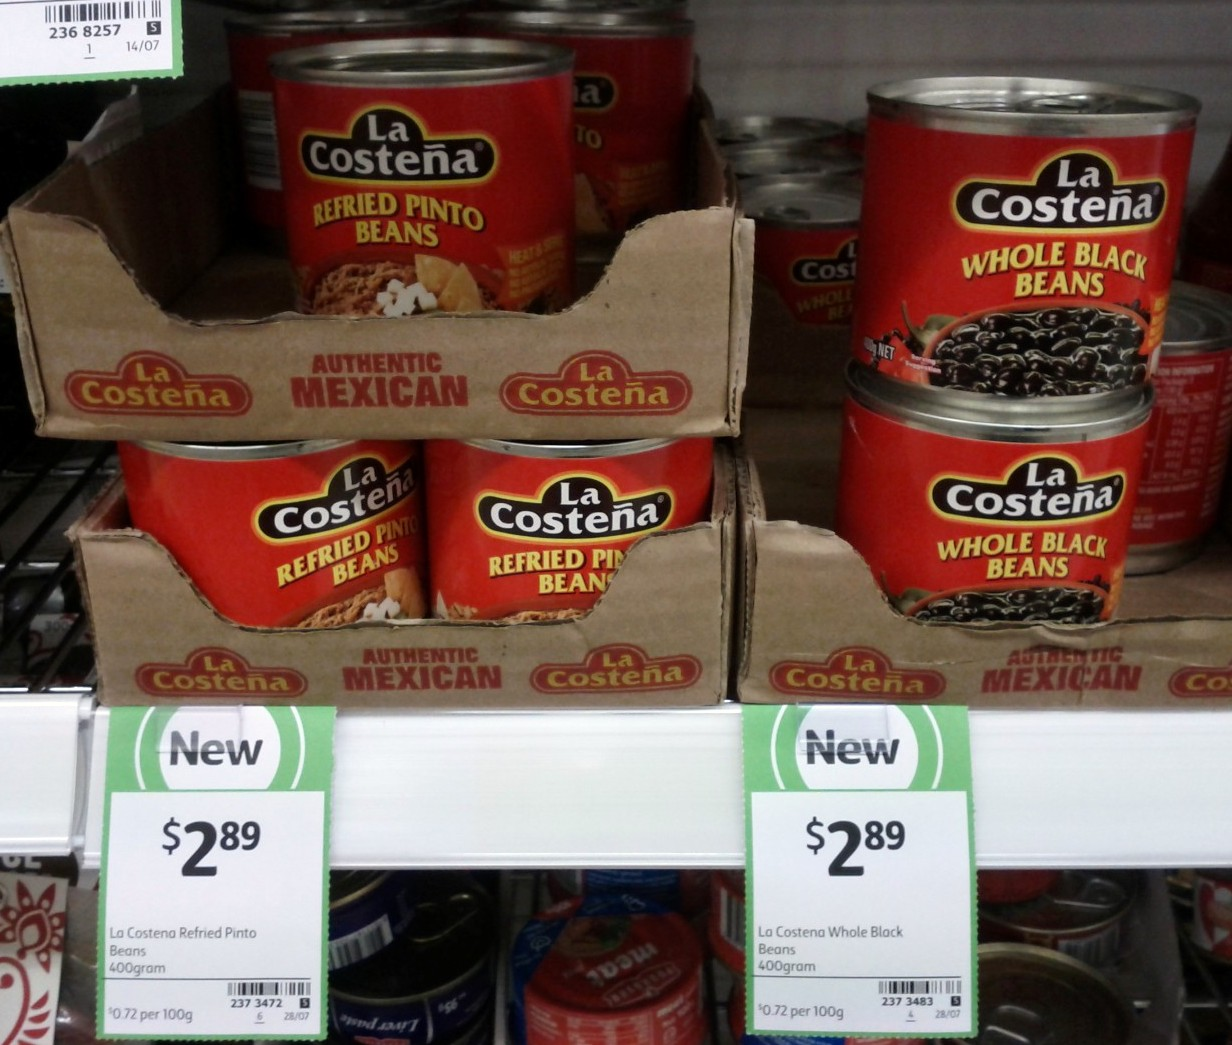 La Costena 400g Refired Pinto Beans, Whole Black Beans